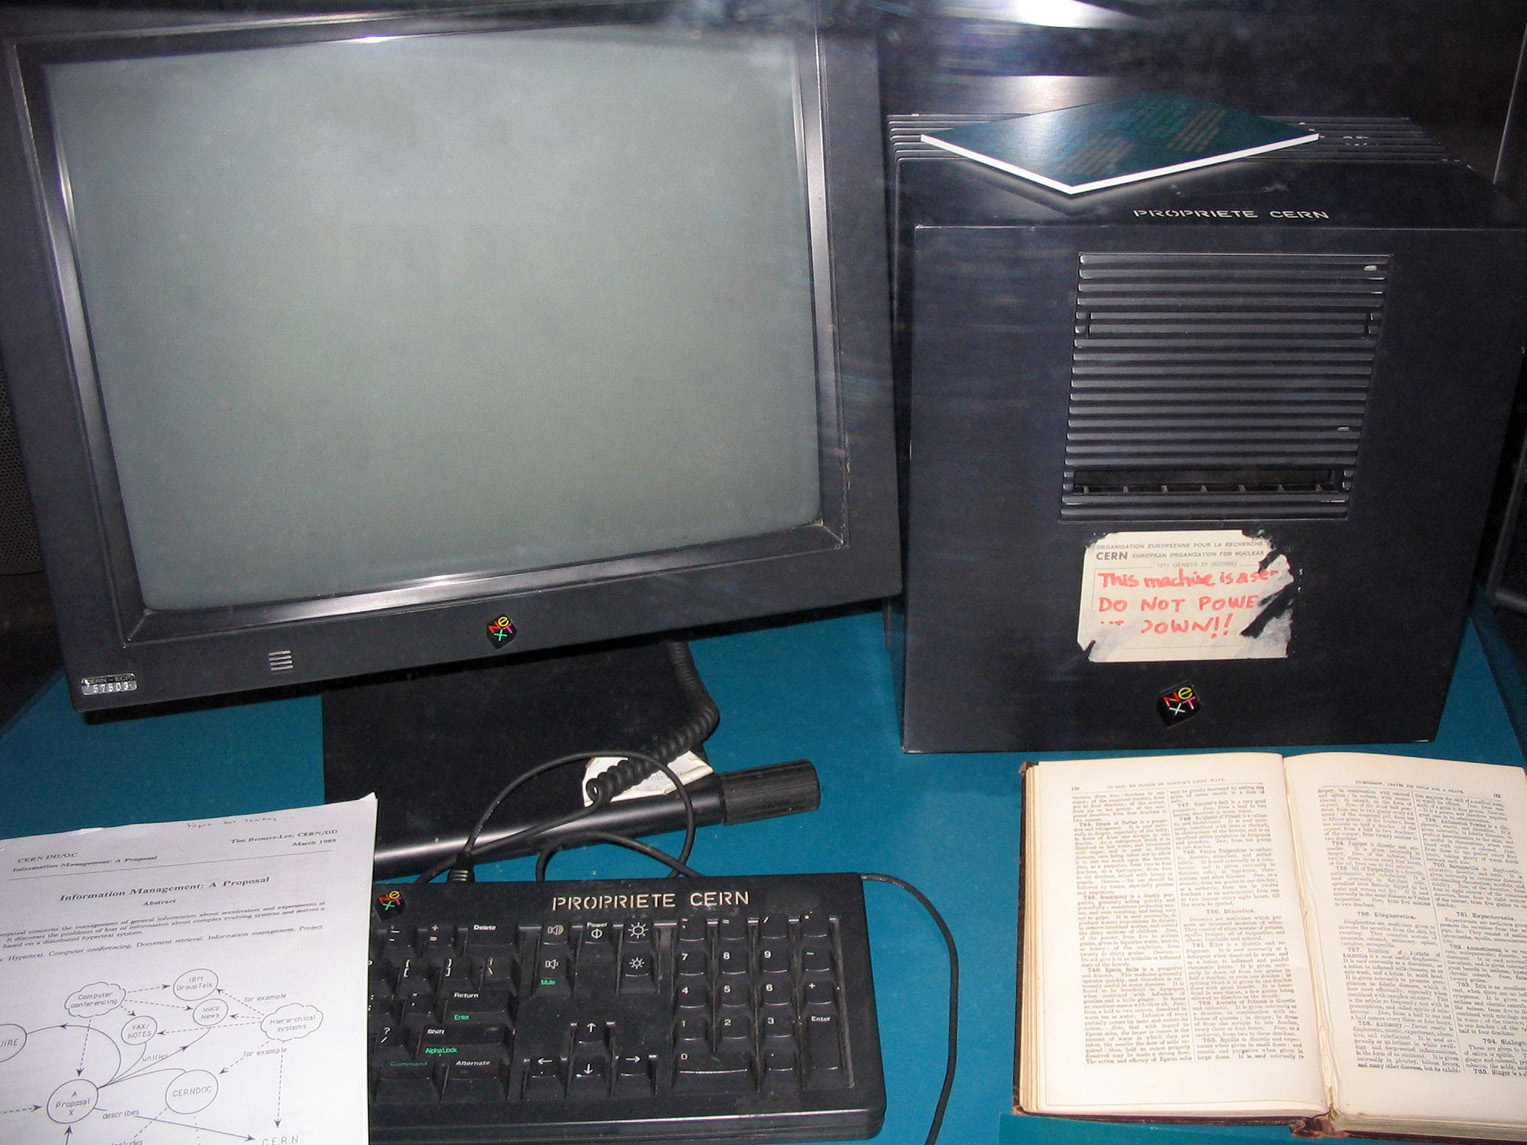 A color photograph of a black computer monitor is seen. It sits on a blue desk with part of a keyboard, covered by a piece of paper with typing, visible below. On the keyboard reads